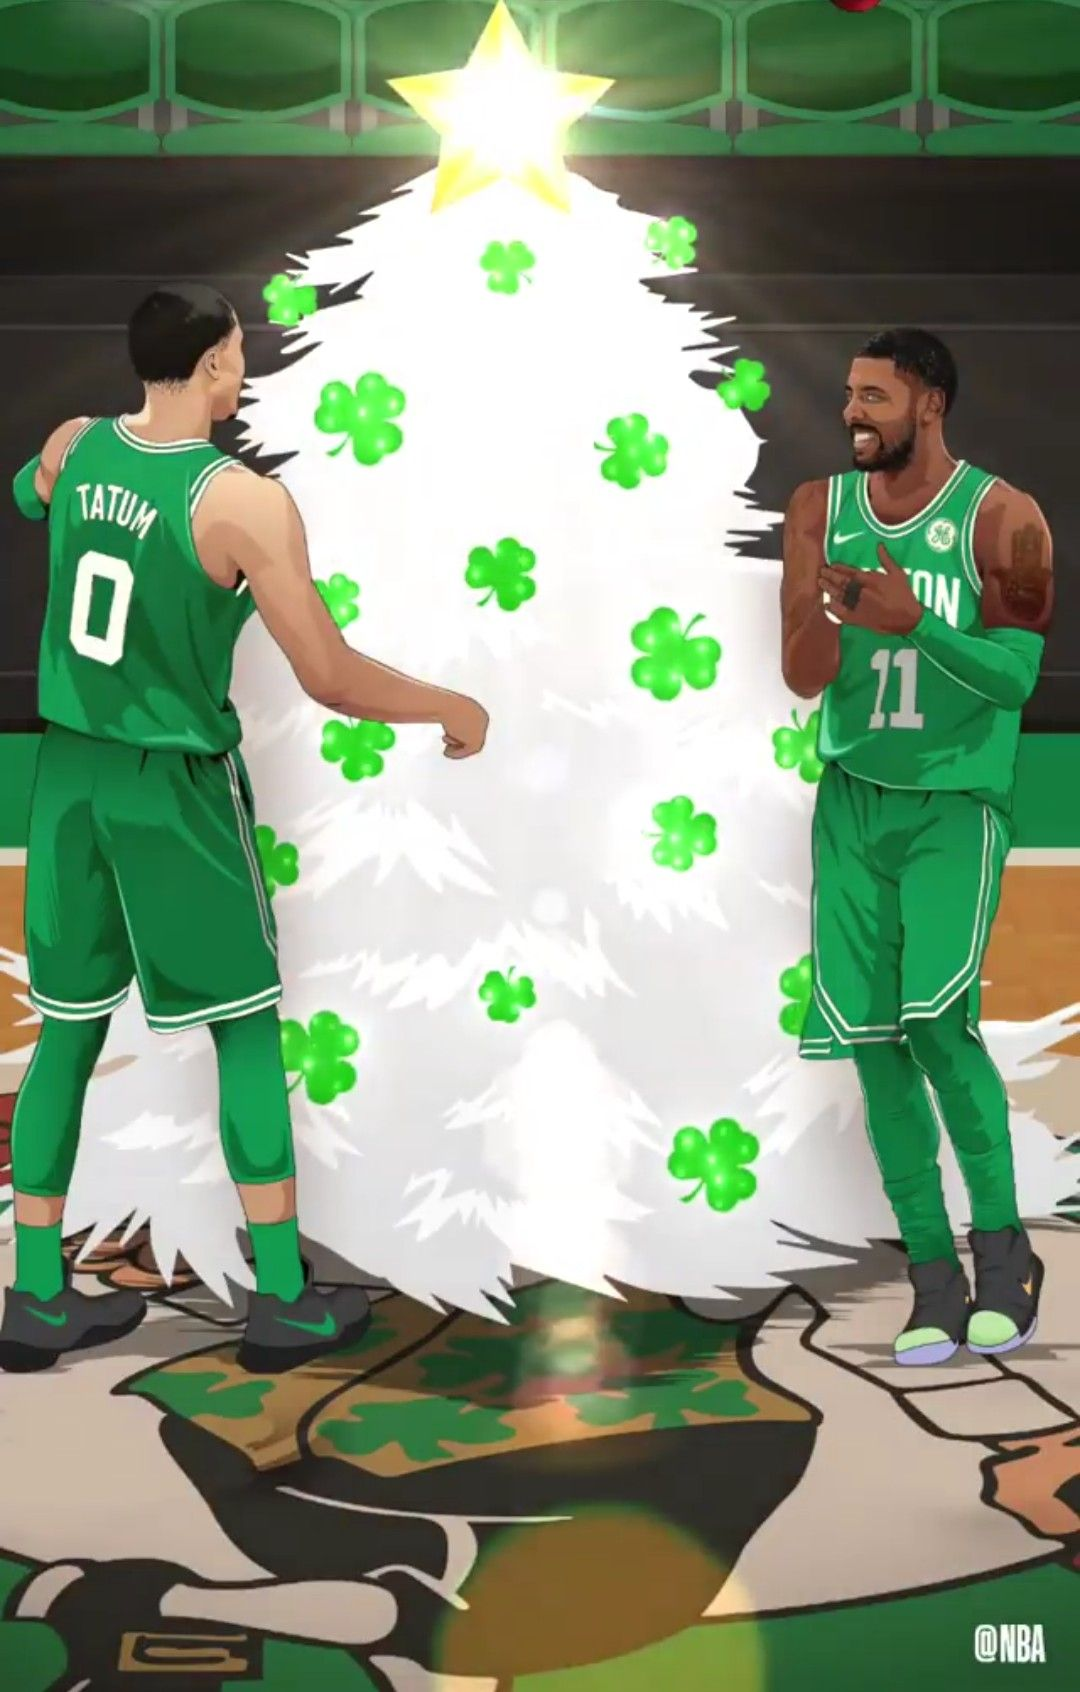 Kyrie Irving and Jayson Tatum Christmas edit Nba Sports f9d0c83ed